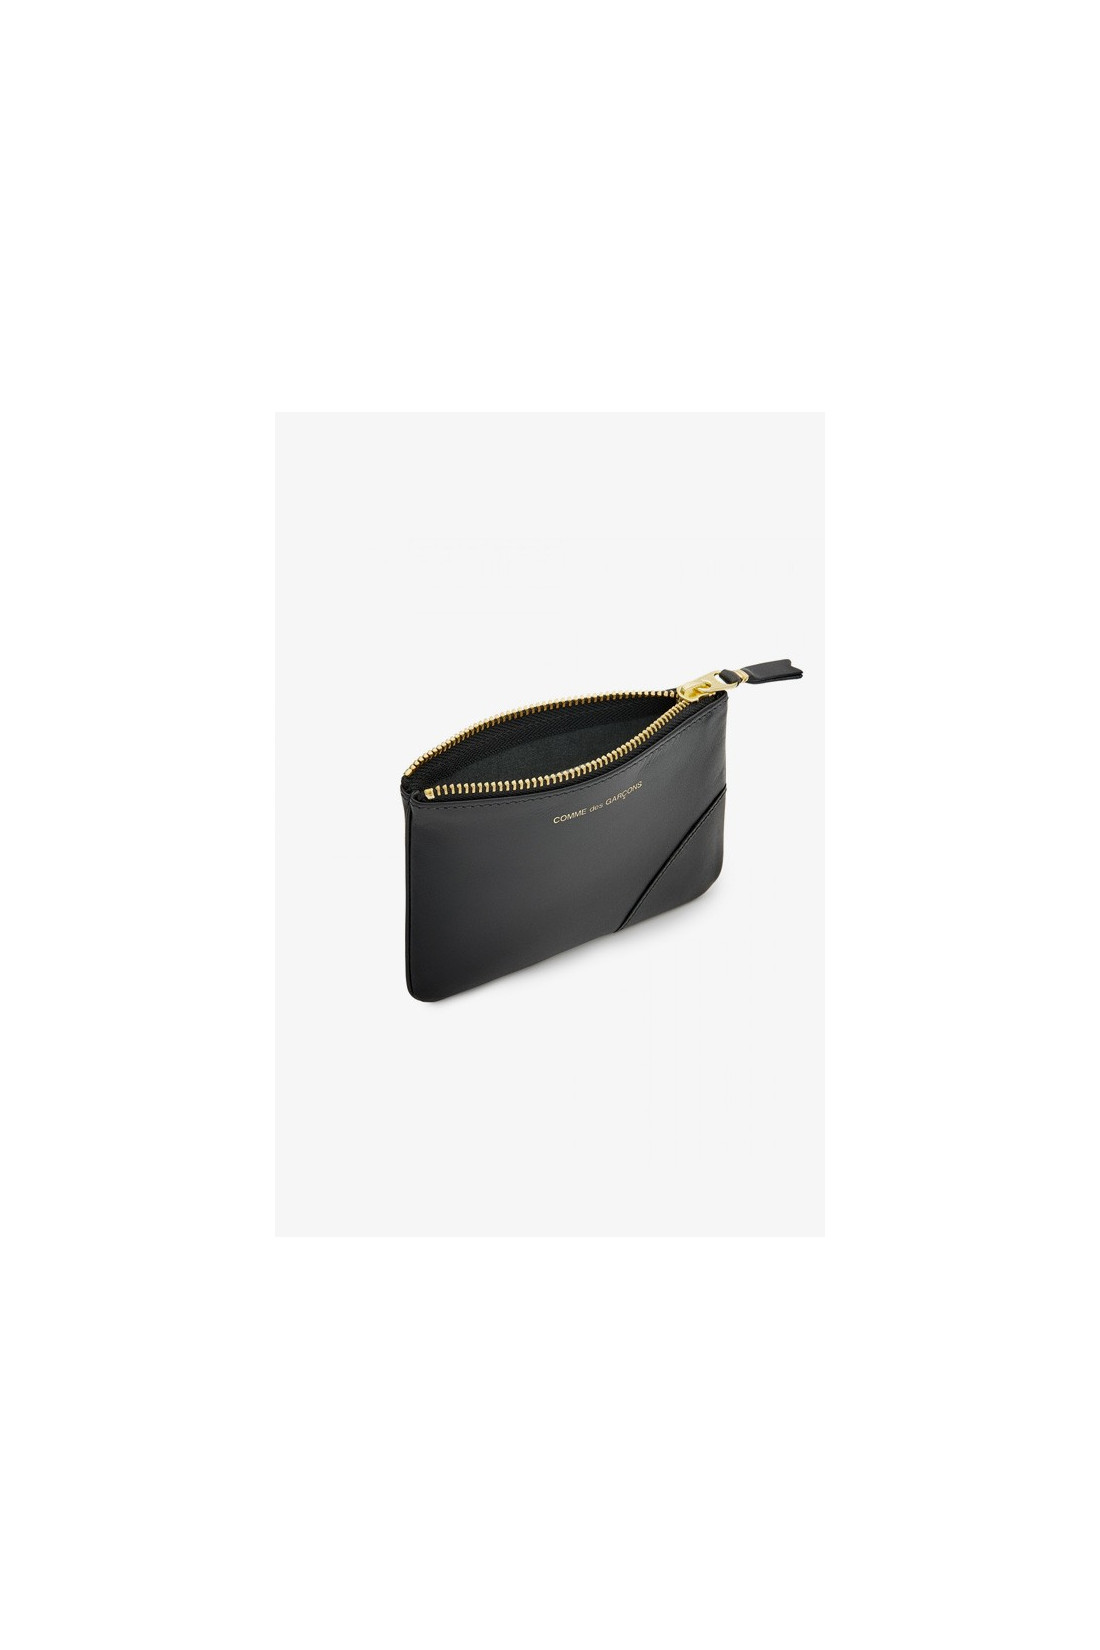 CDG WALLETS FOR WOMAN / Cdg classic leather sa8100 Black